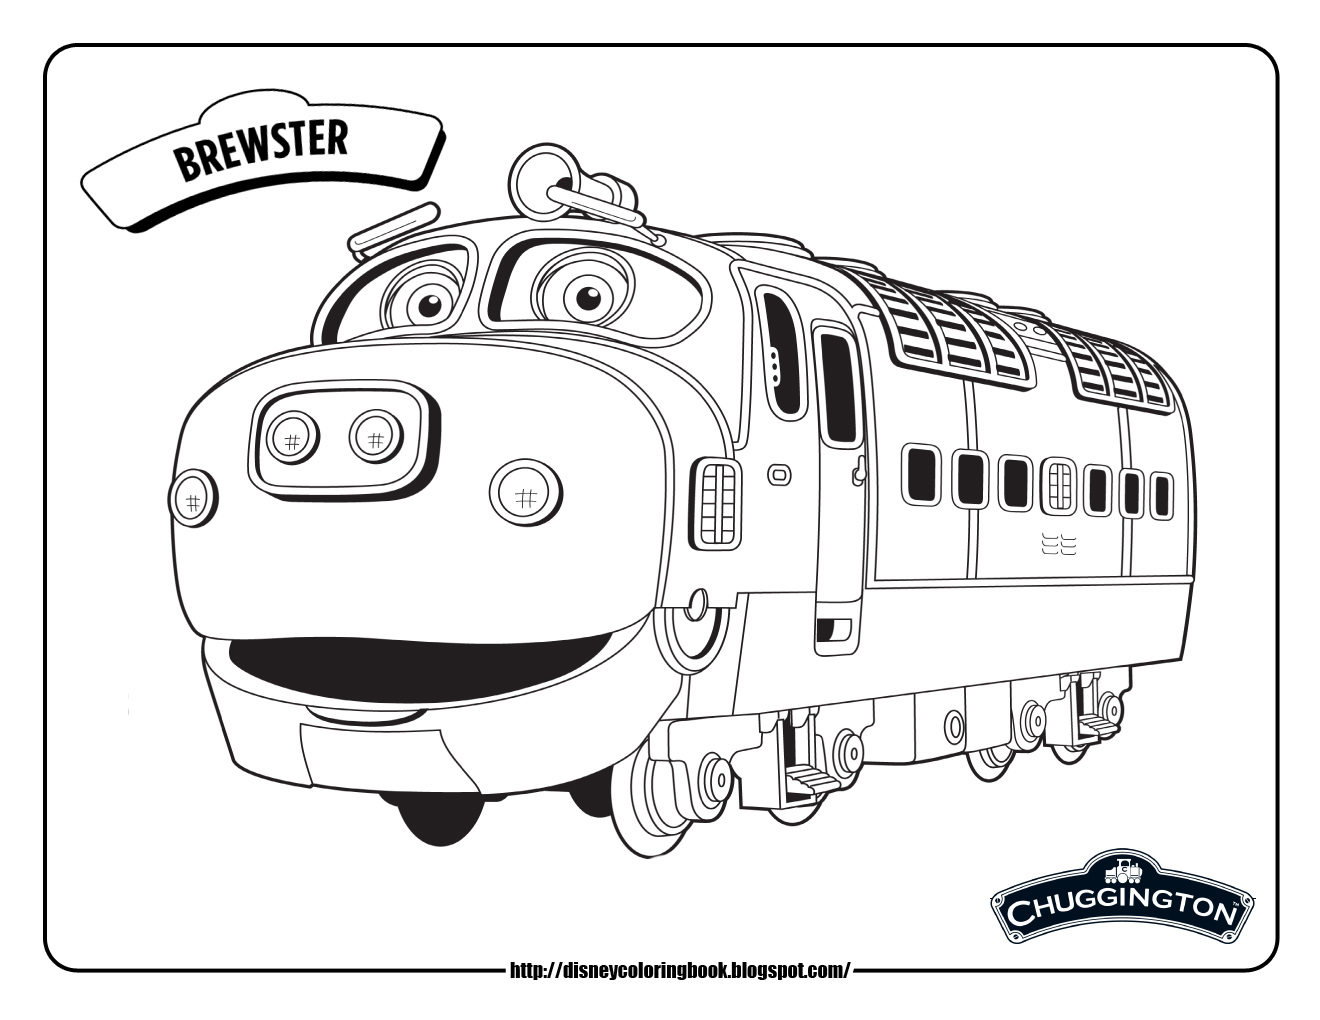 Disney Coloring Pages And Sheets For Kids Chuggington 1